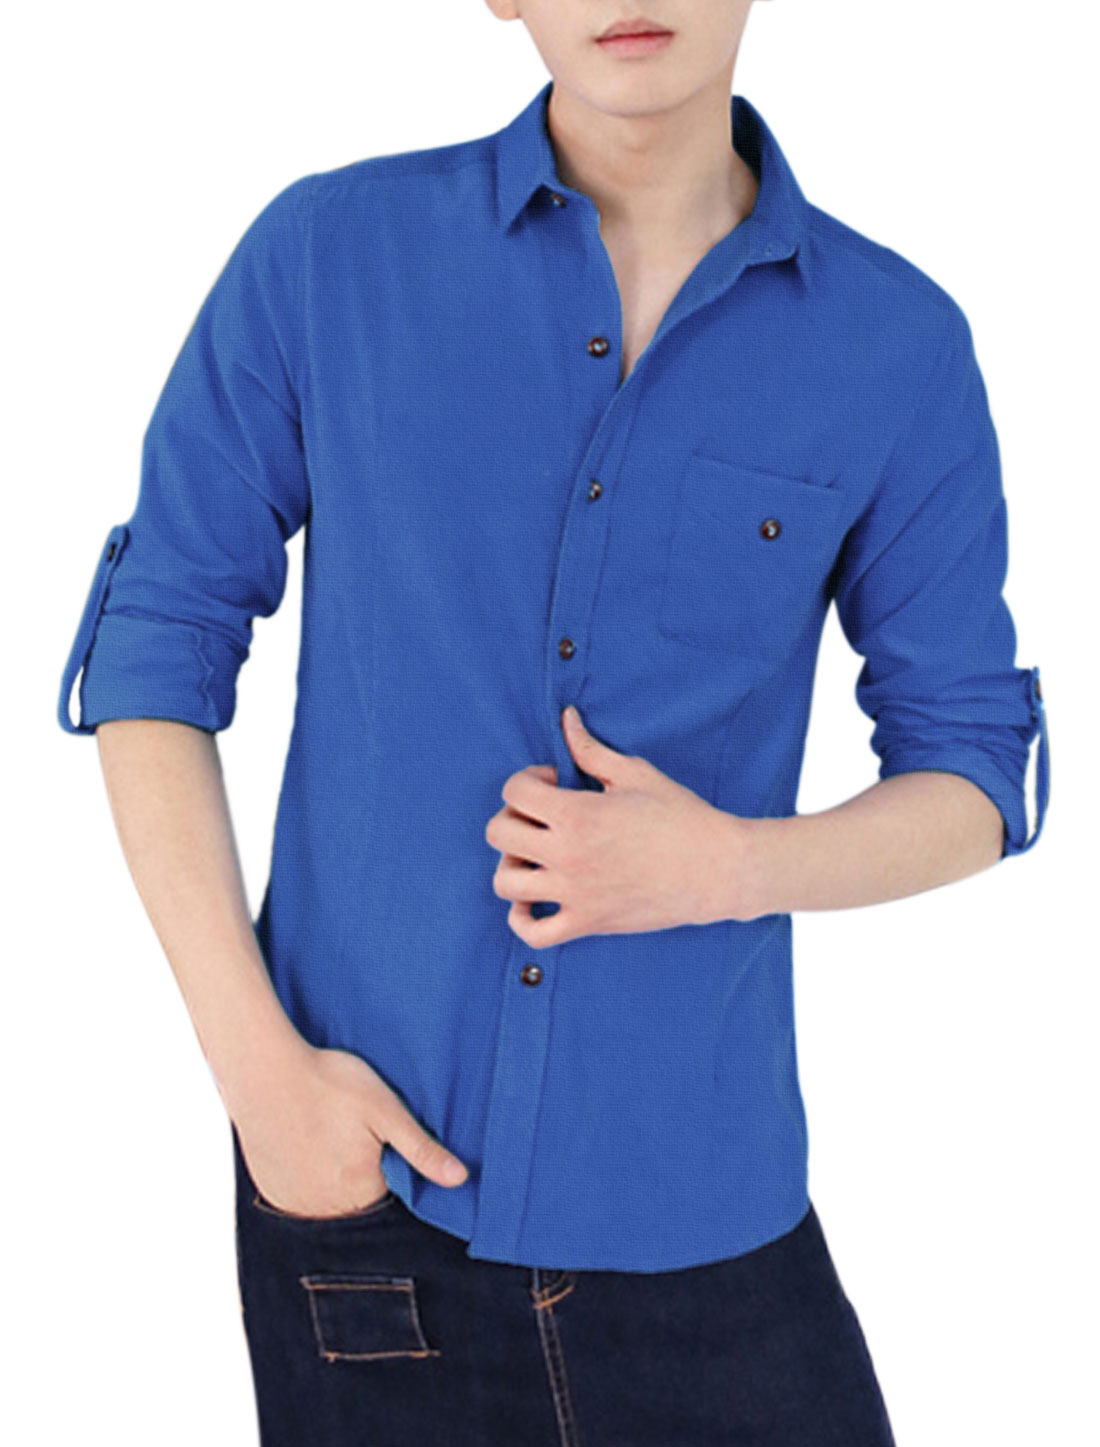 Roll-up Sleeves Button Cuffs Royal Blue Corduroy Shirt for Man S